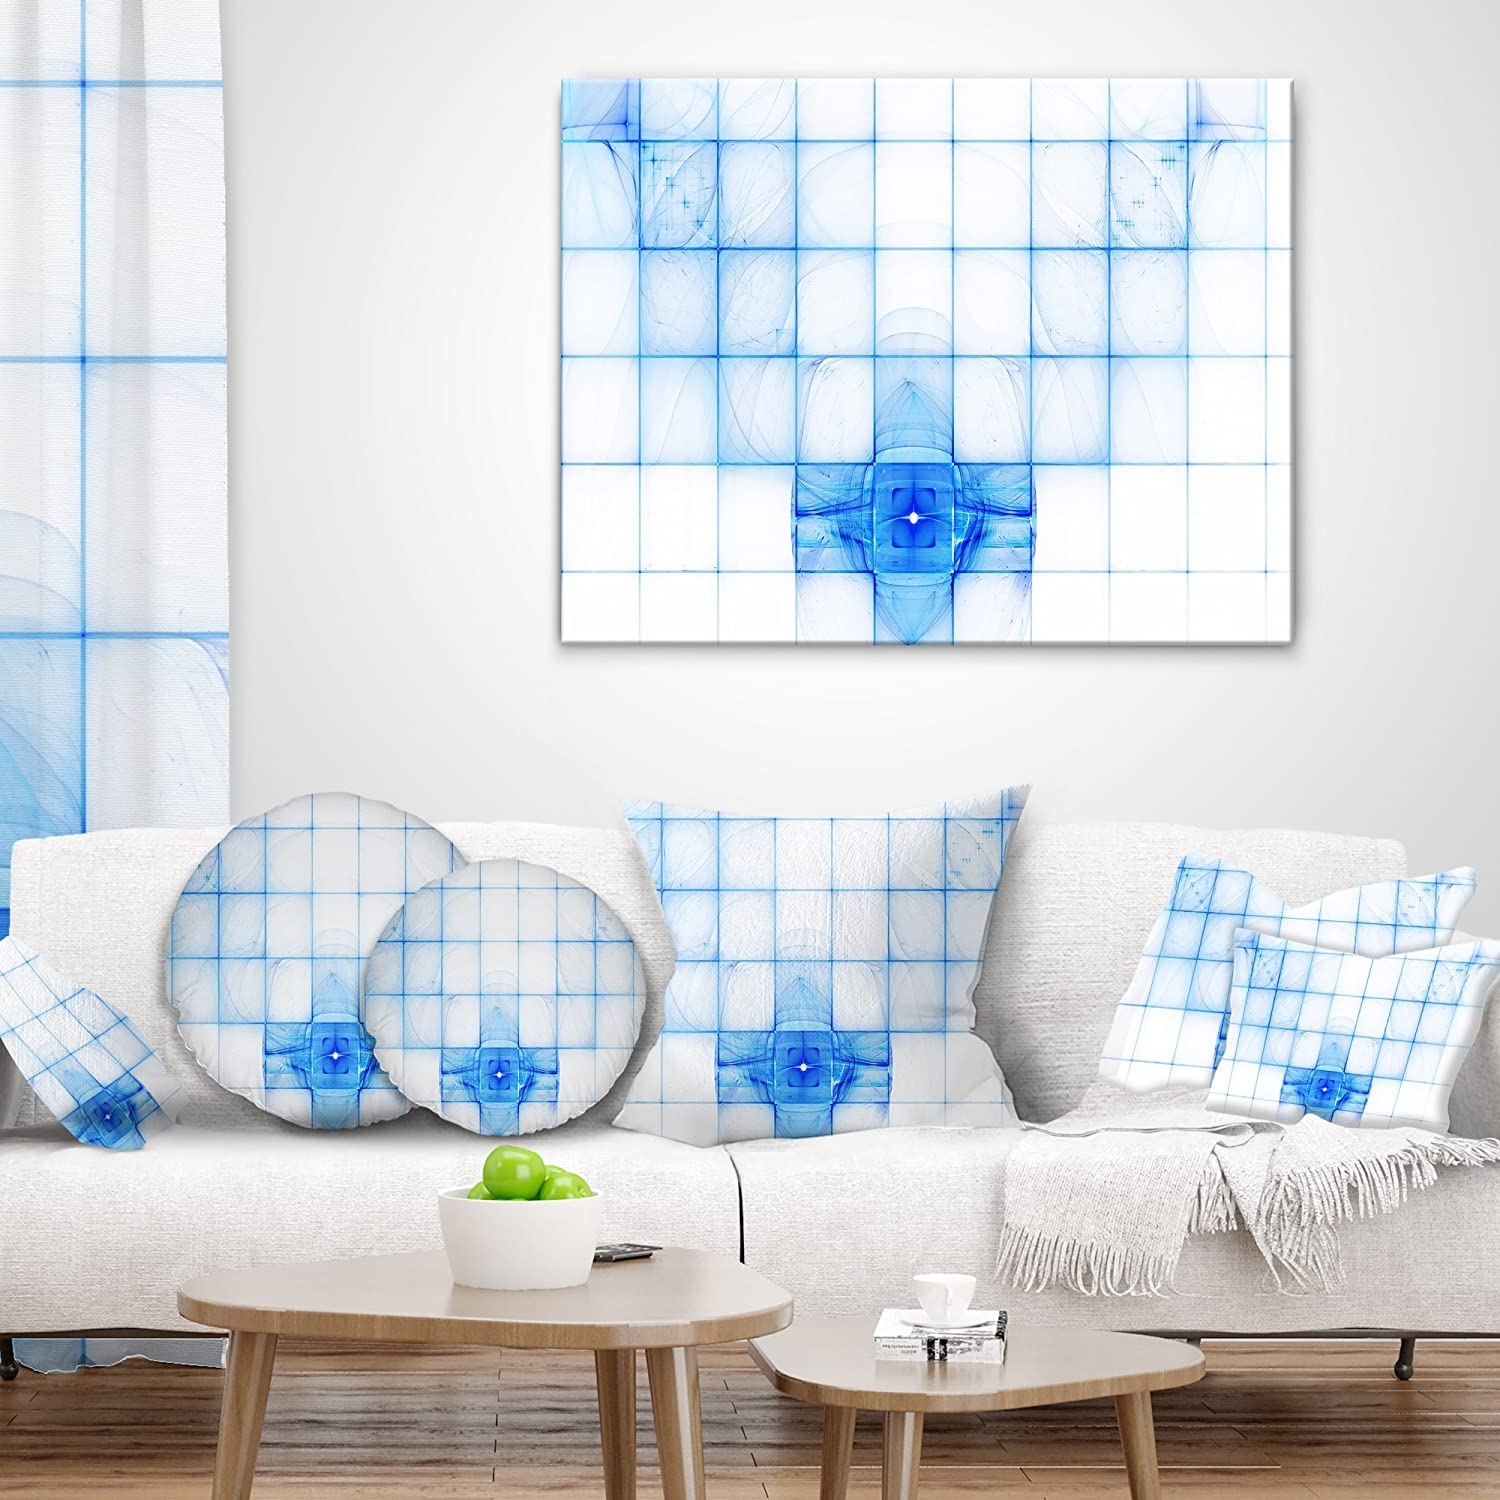 Sofa Throw Pillow 26 In In Designart Cu16063 26 26 Bat Outline On Radar Screen Abstract Cushion Cover For Living Room X 26 In Throw Pillow Covers Decorative Pillows Inserts Covers